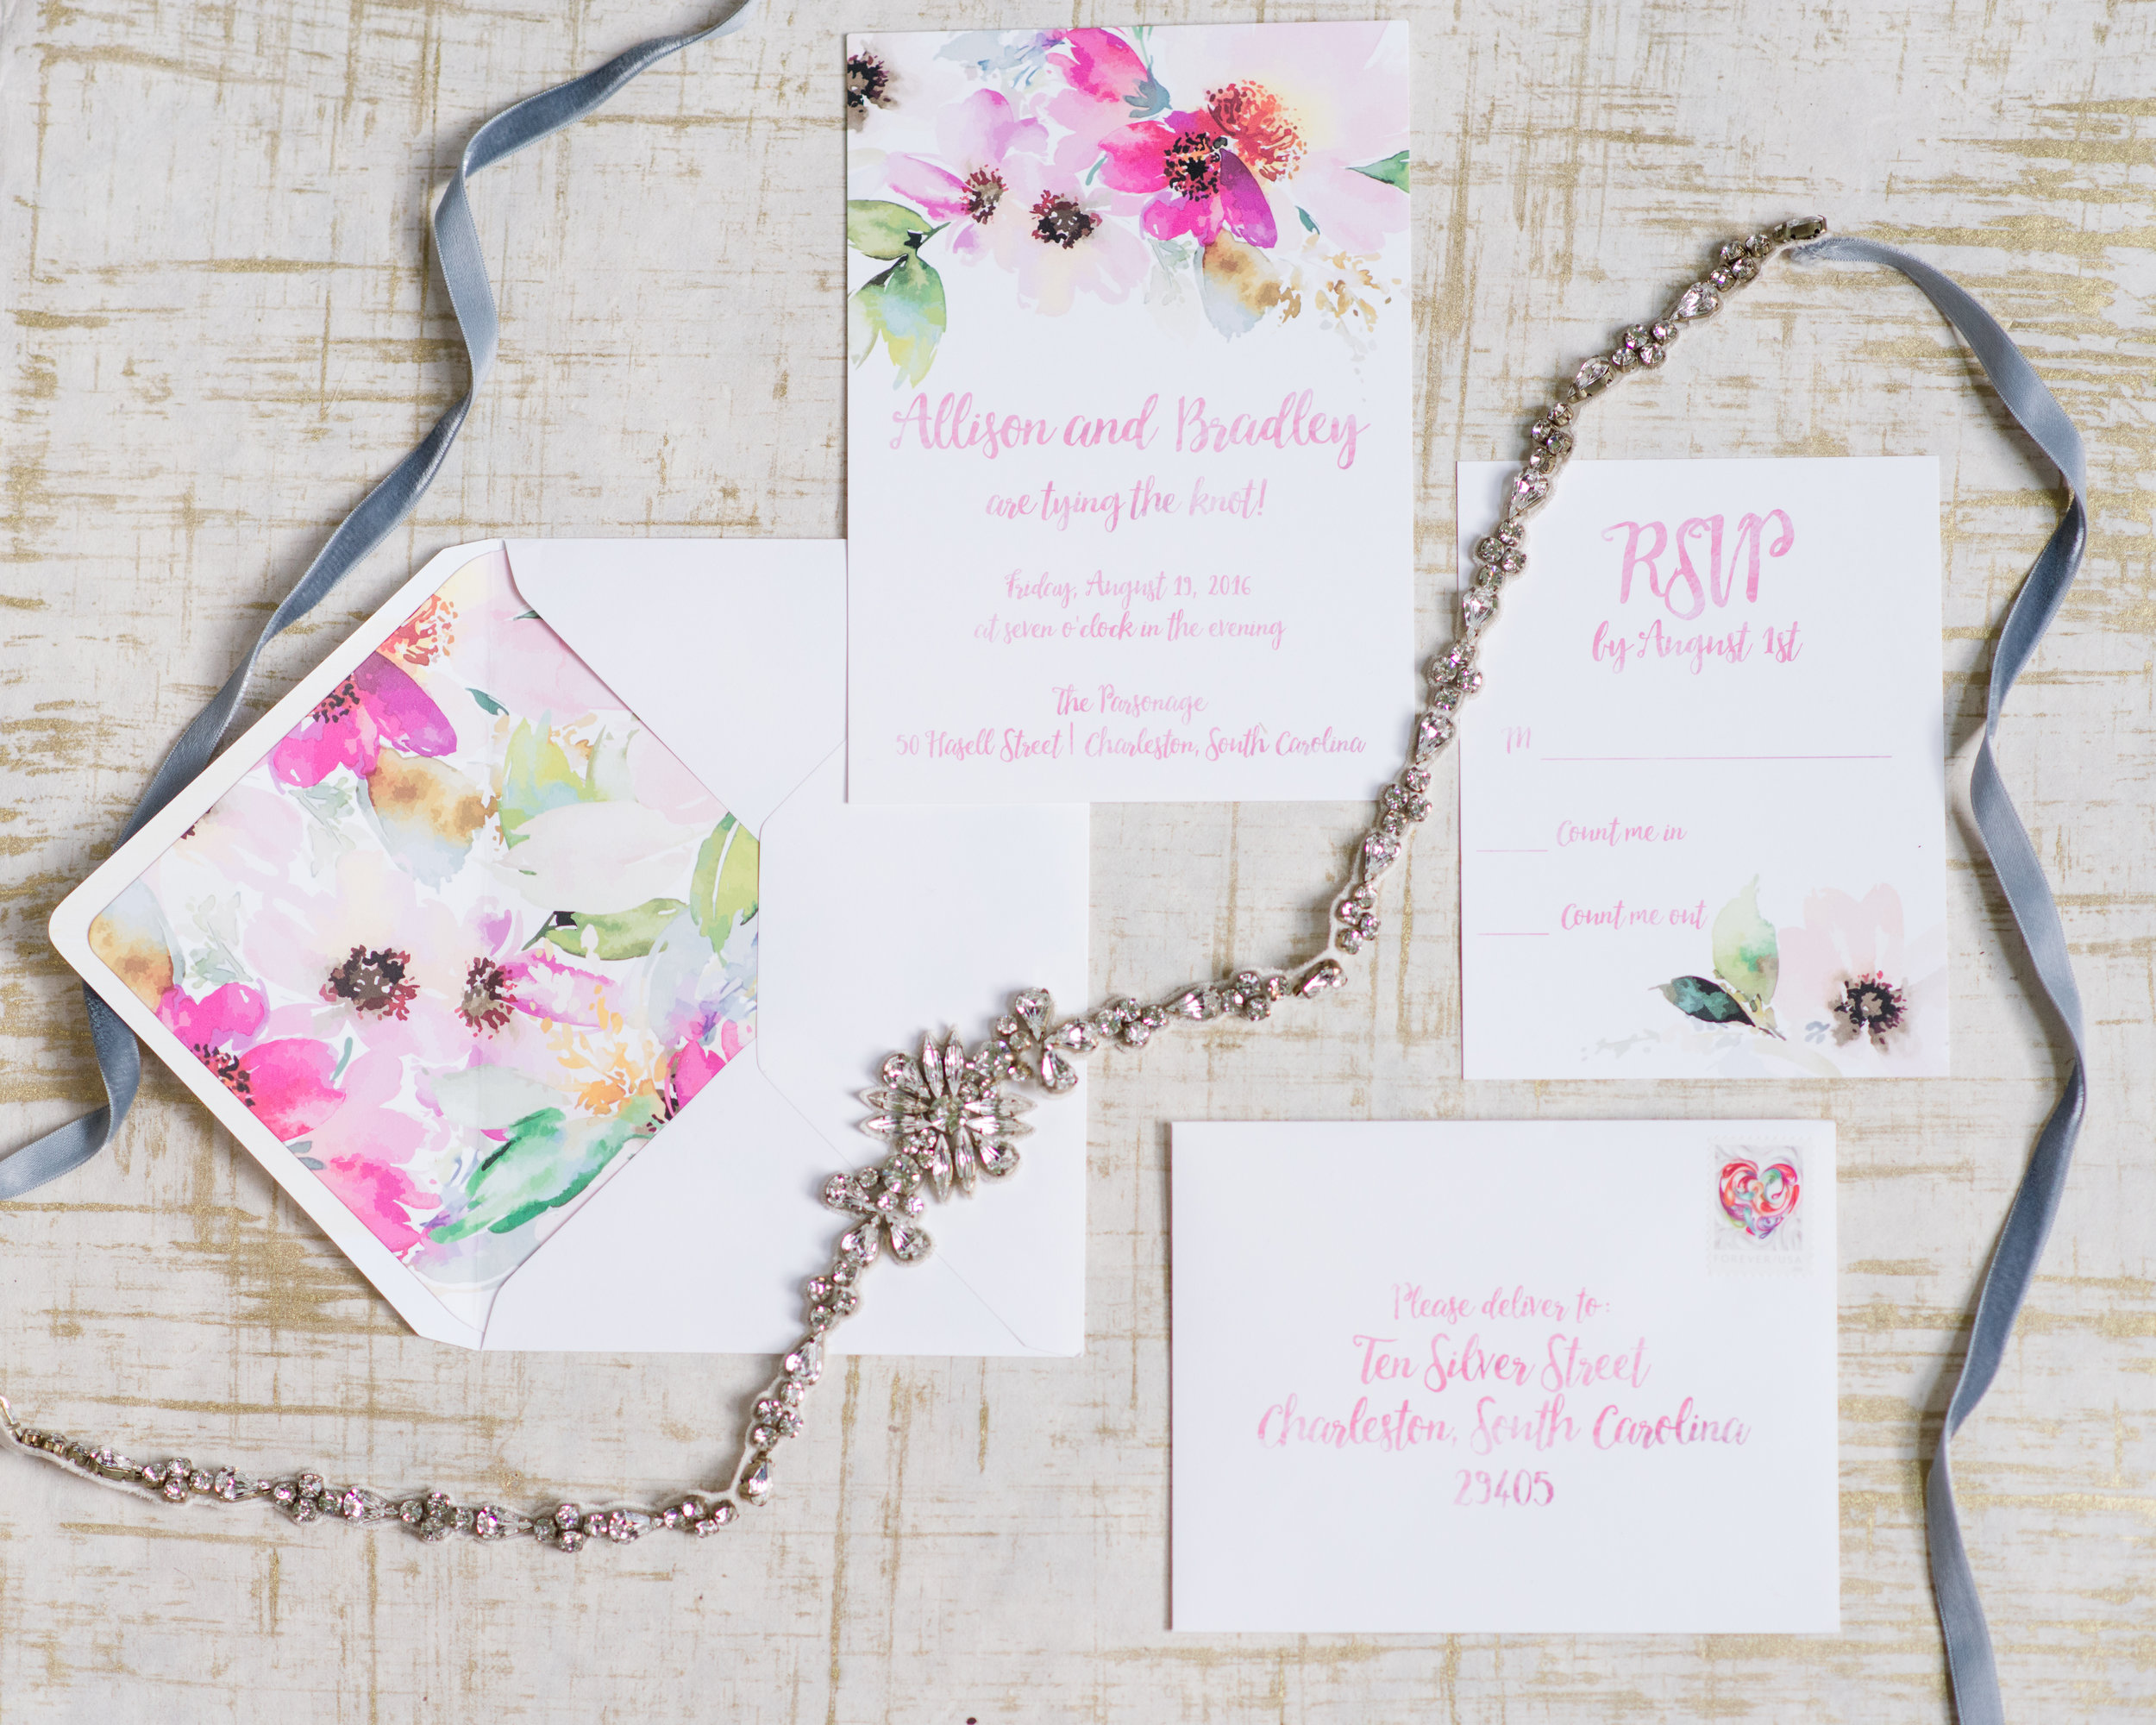 Katherine Elena Photography | Scarlet Plan and Design